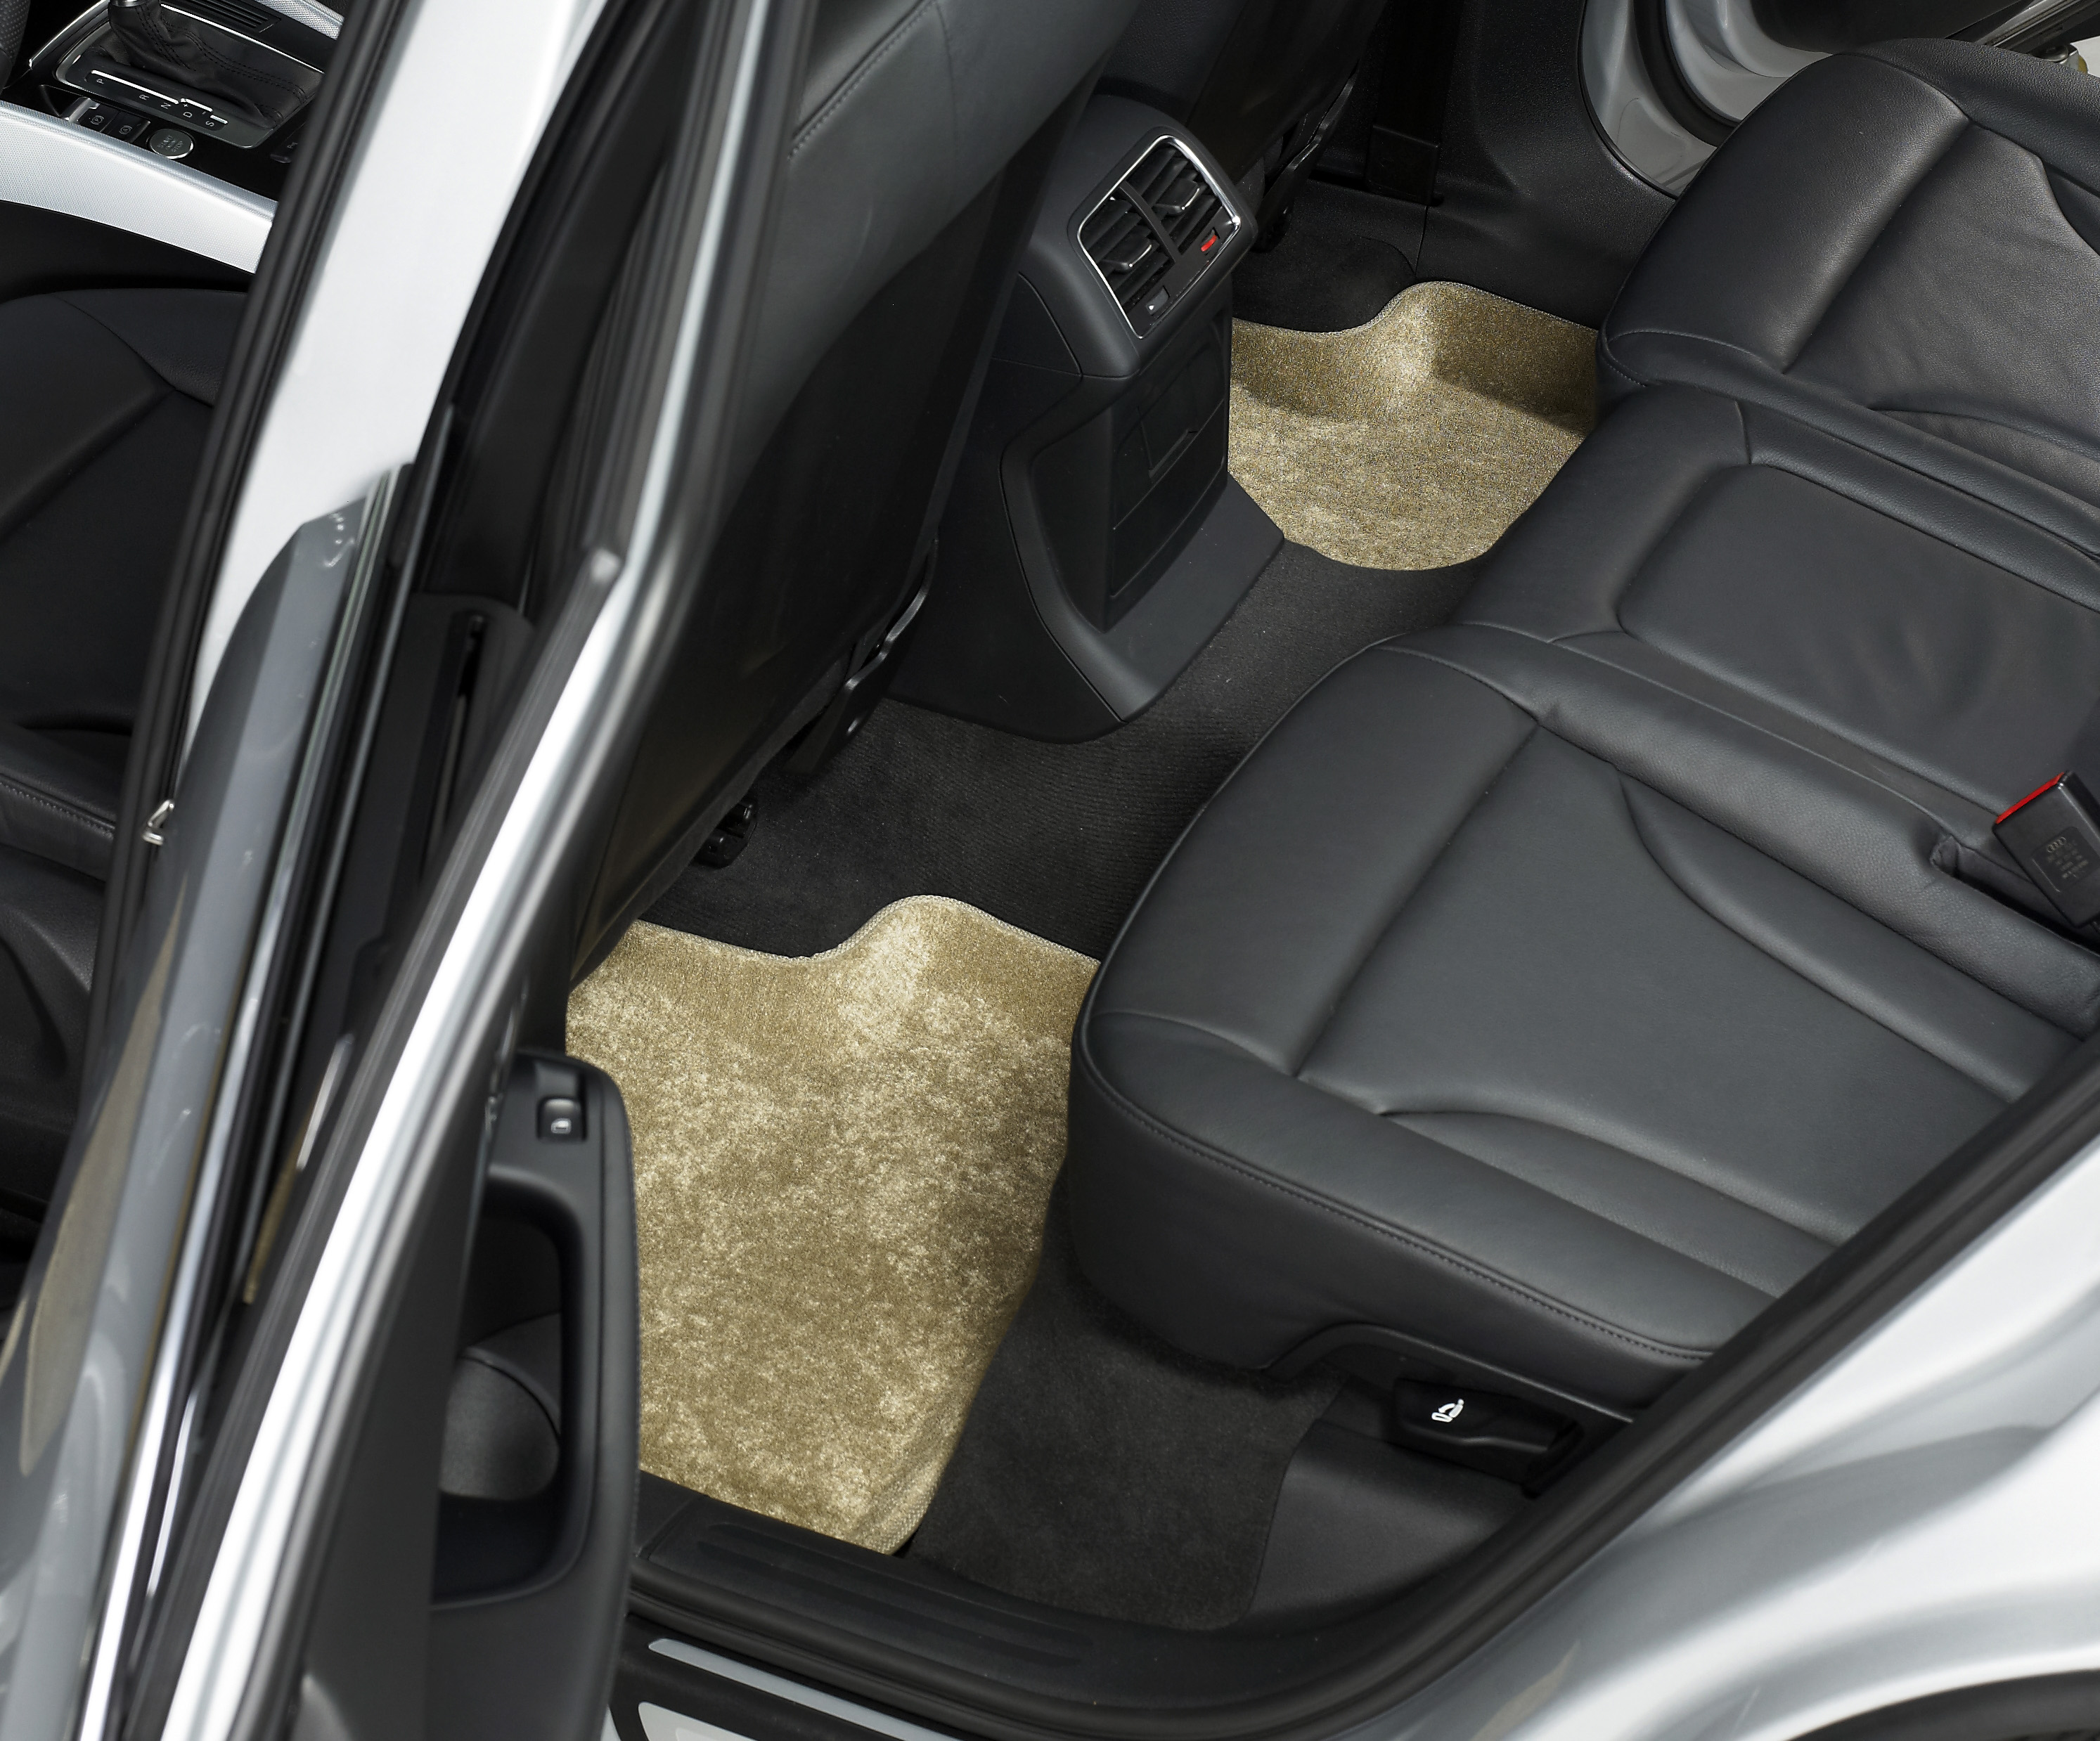 2009 2010 GGBAILEY D50597-S2B-GY-LP Custom Fit Car Mats for 2008 Passenger /& Rear Floor 2011 Buick Enclave Grey Loop Driver